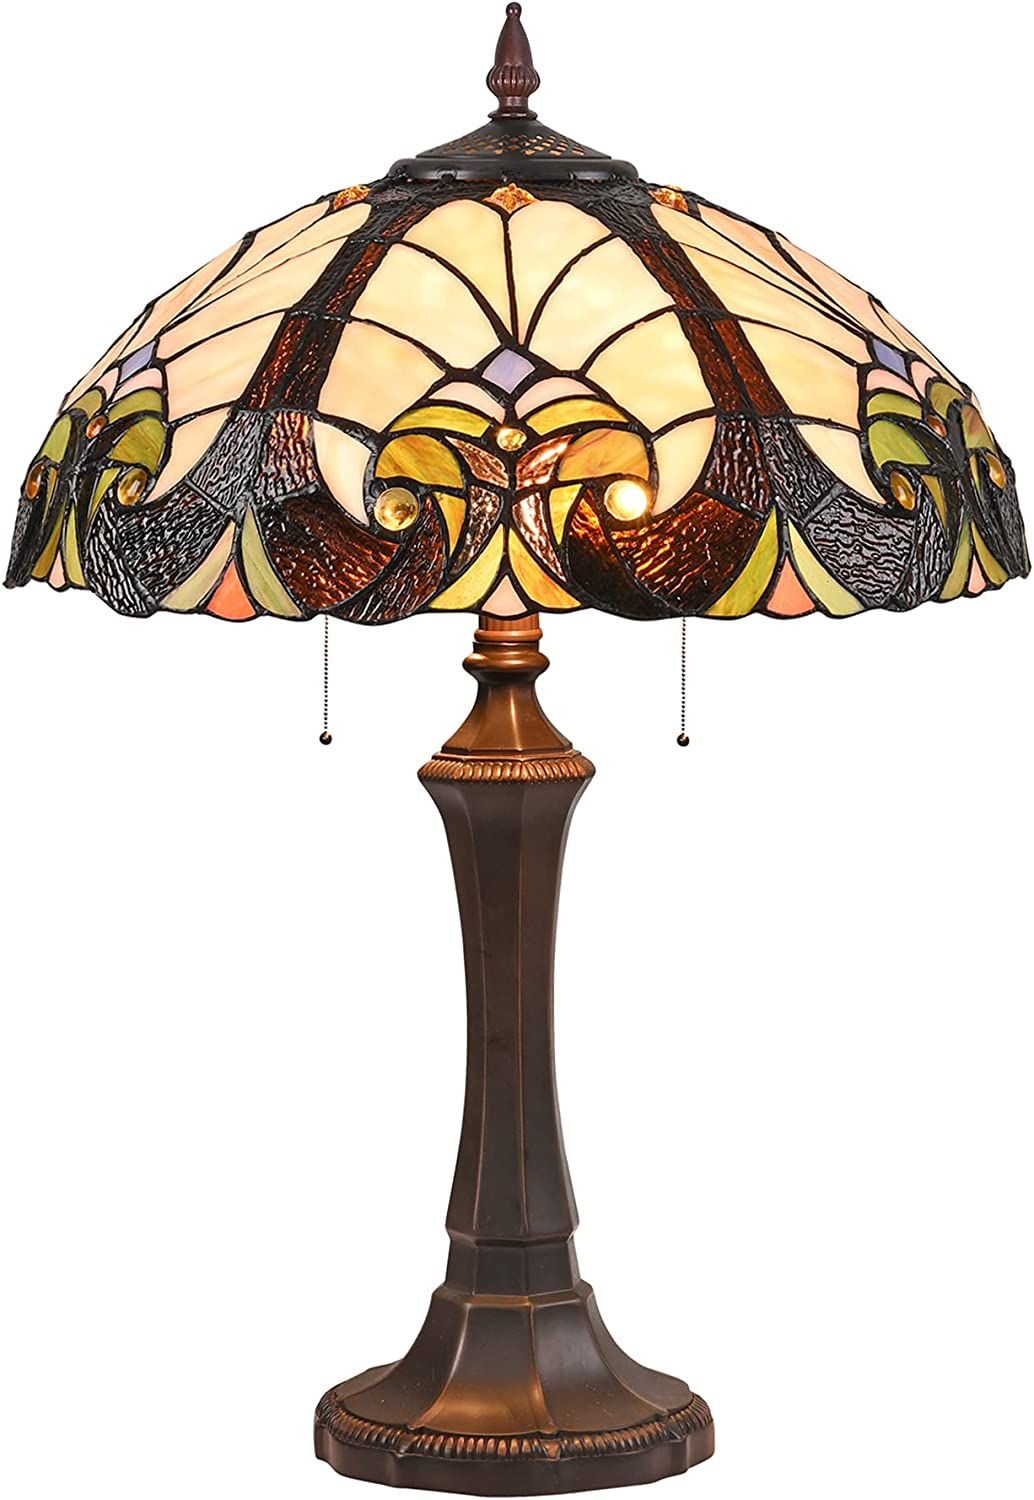 Doowin Tiffany Table OFFicial site Lamp Stained Light Max 63% OFF 2 Lighting